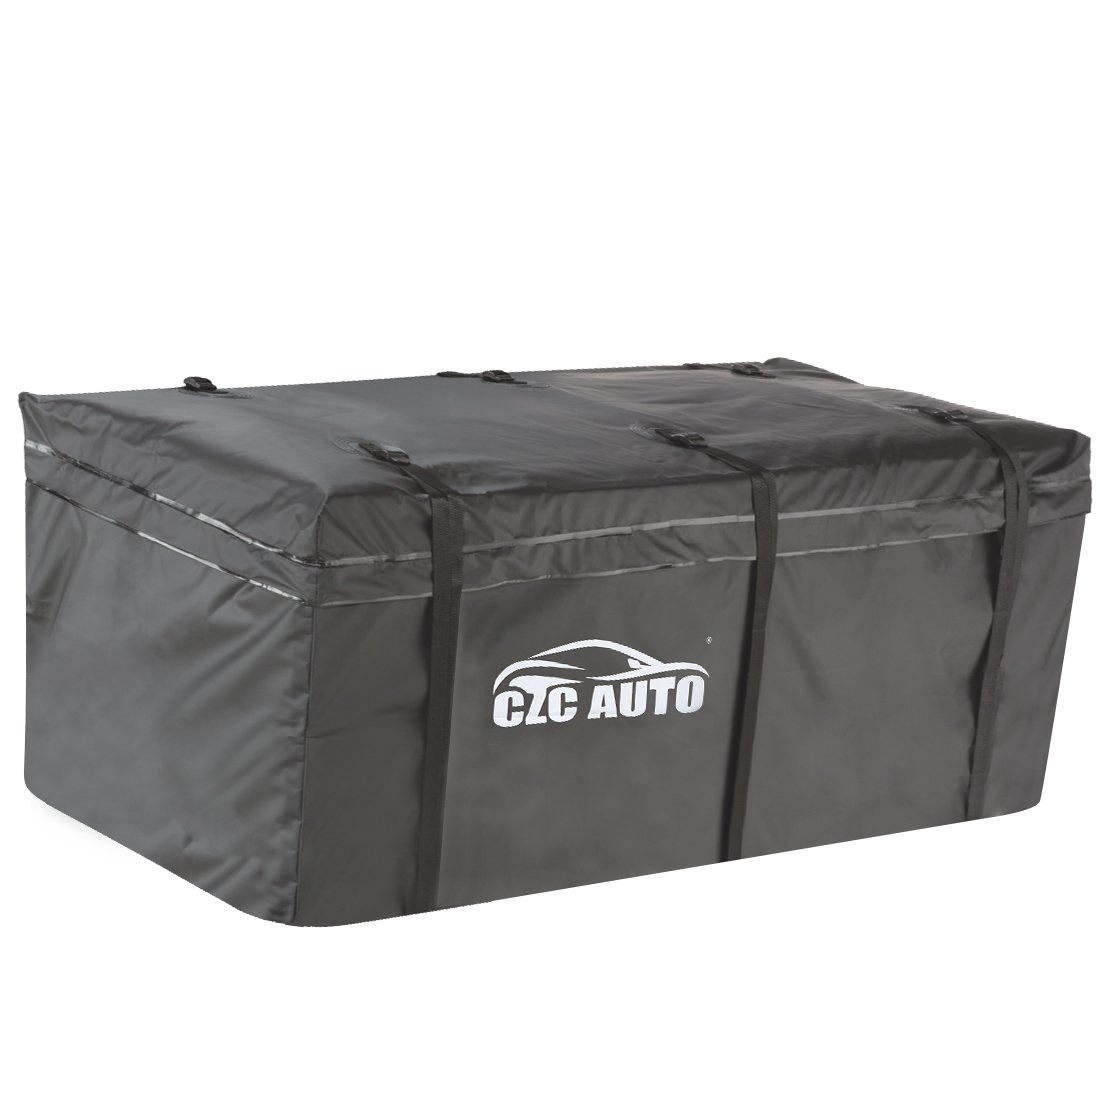 CZC AUTO Hitch Cargo Carrier Bag, 20 cu. ft Waterproof/Rainproof/Weatherproof Cargo Traveling Bag for Car Truck SUV Vans' Hitch Trays and Hitch Baskets, Safe Steady Durable Soft, Black by CZC AUTO